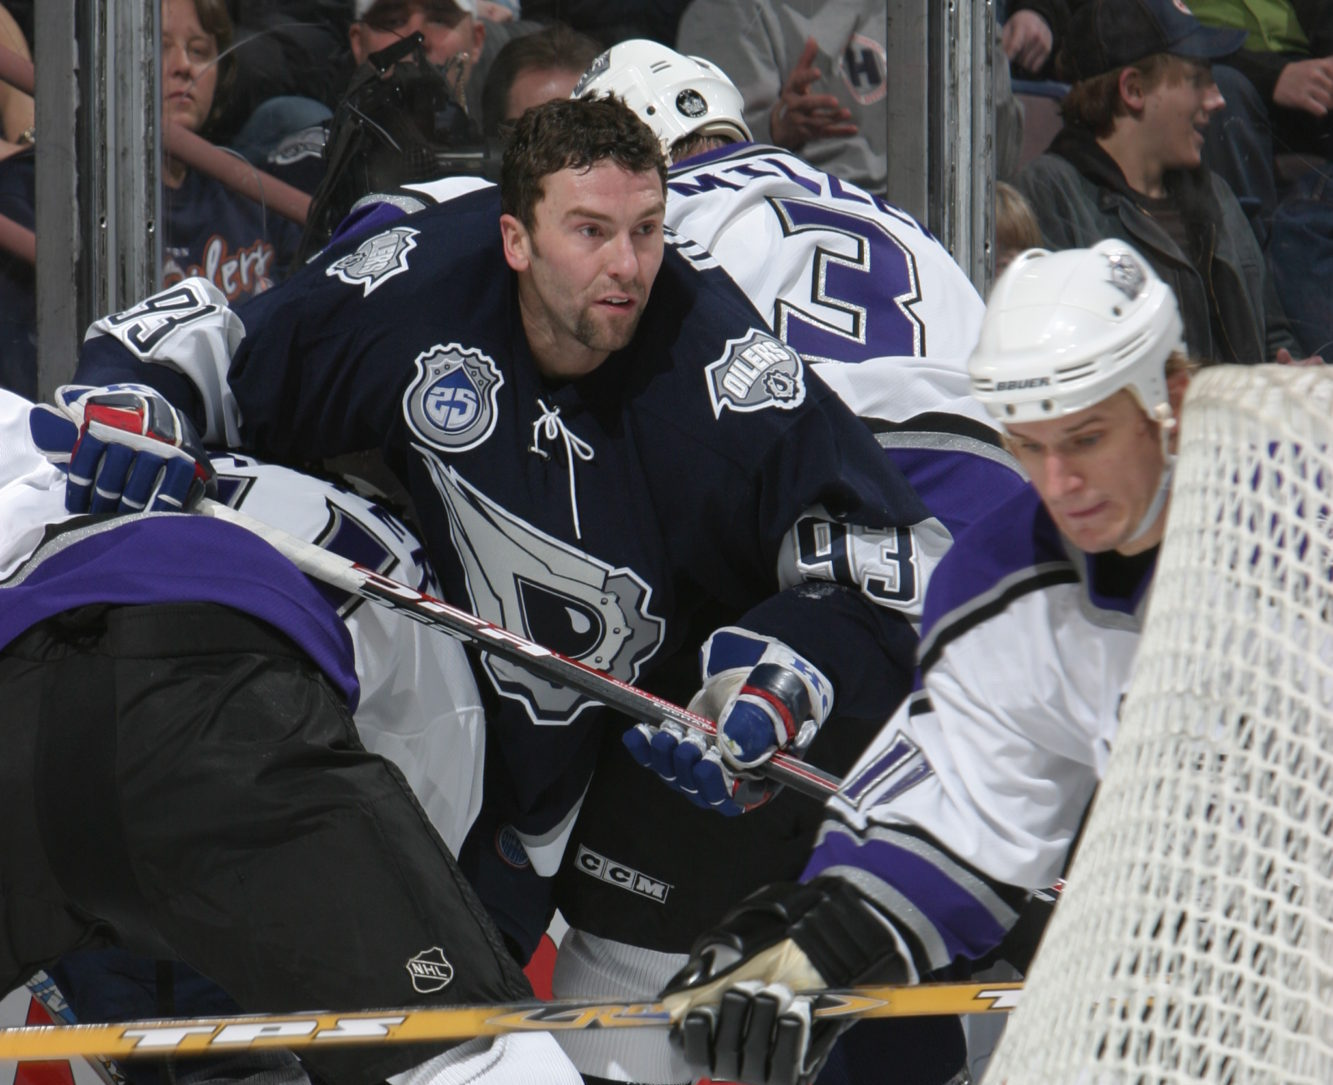 Lineups; Kings face tough special teams test; Quick hits with Austin Wagner; donations to Saugus - LA Kings Insider